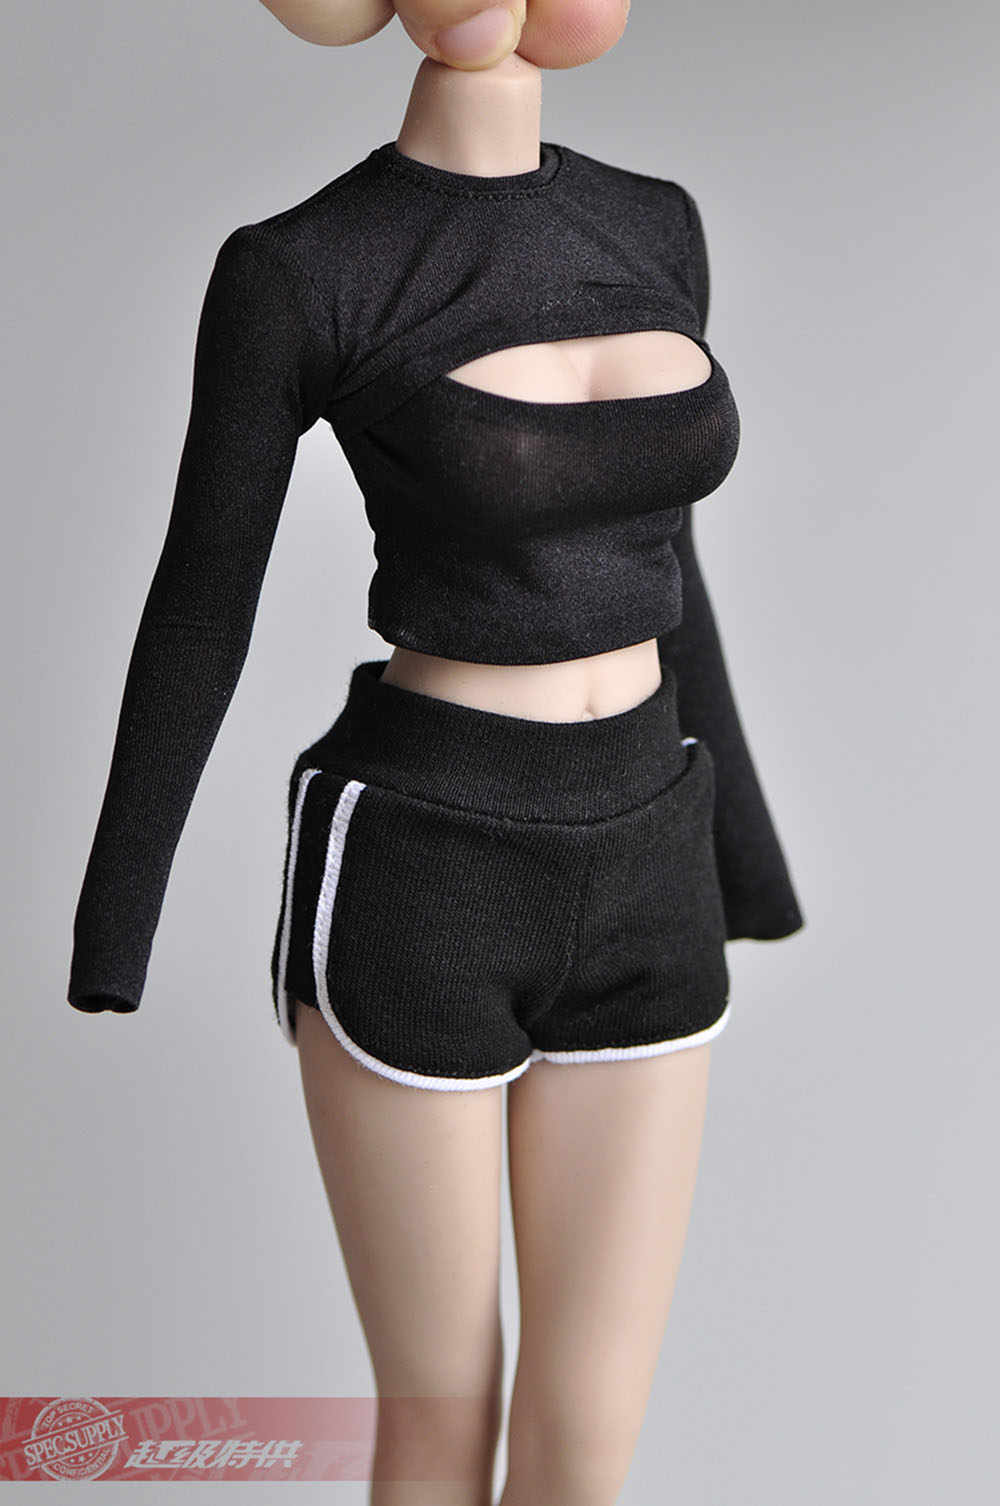 1//6 Puff Sleeve Pleated Top Short Sleeve T-shirt Model Fit 1//6 TBL Action Figure